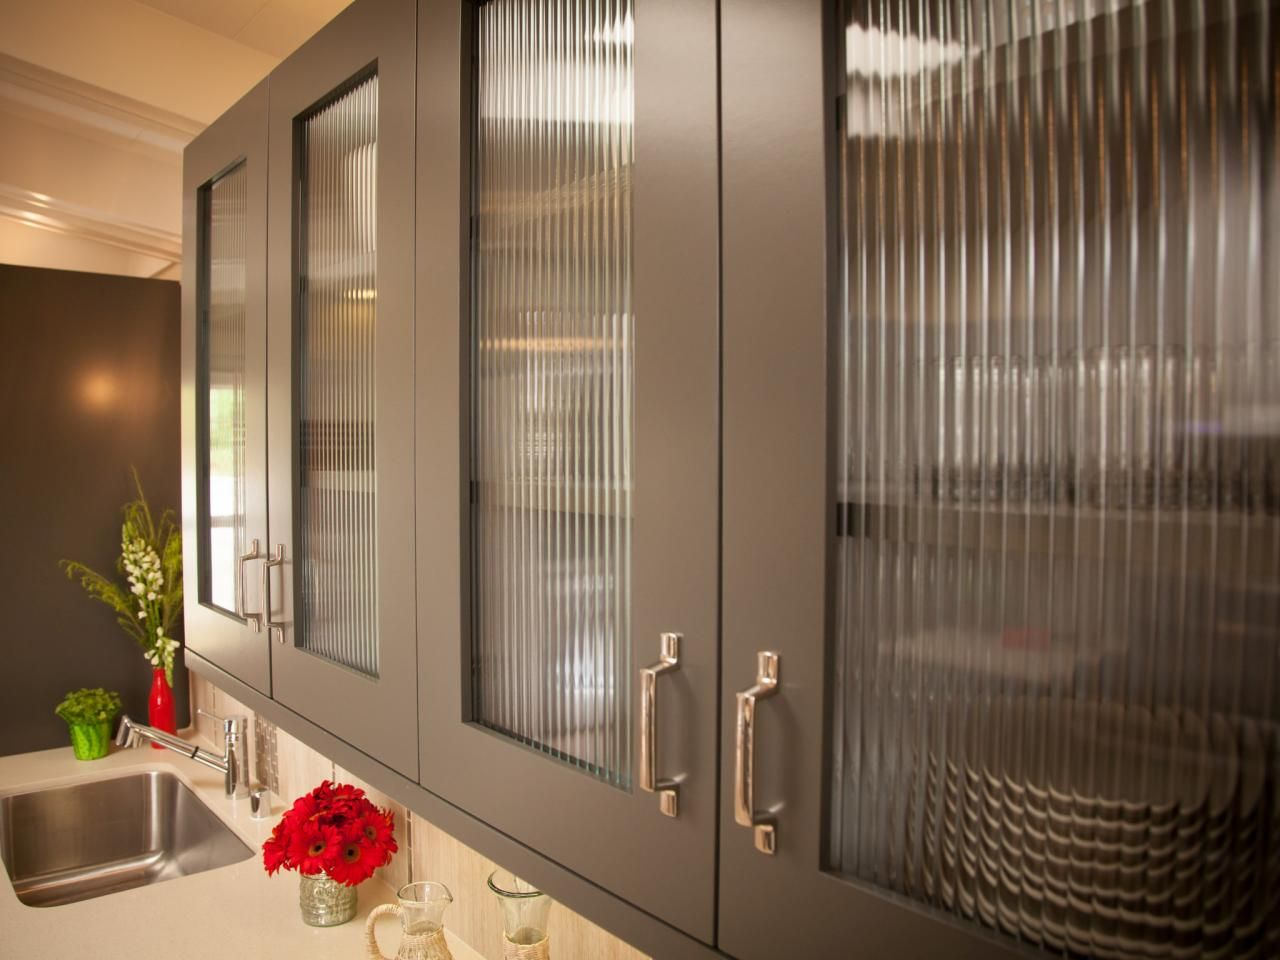 the glass doors on these gray kitchen cabinets lend a modern feel to this kitchen - Pictures Of Kitchen Cabinet Doors